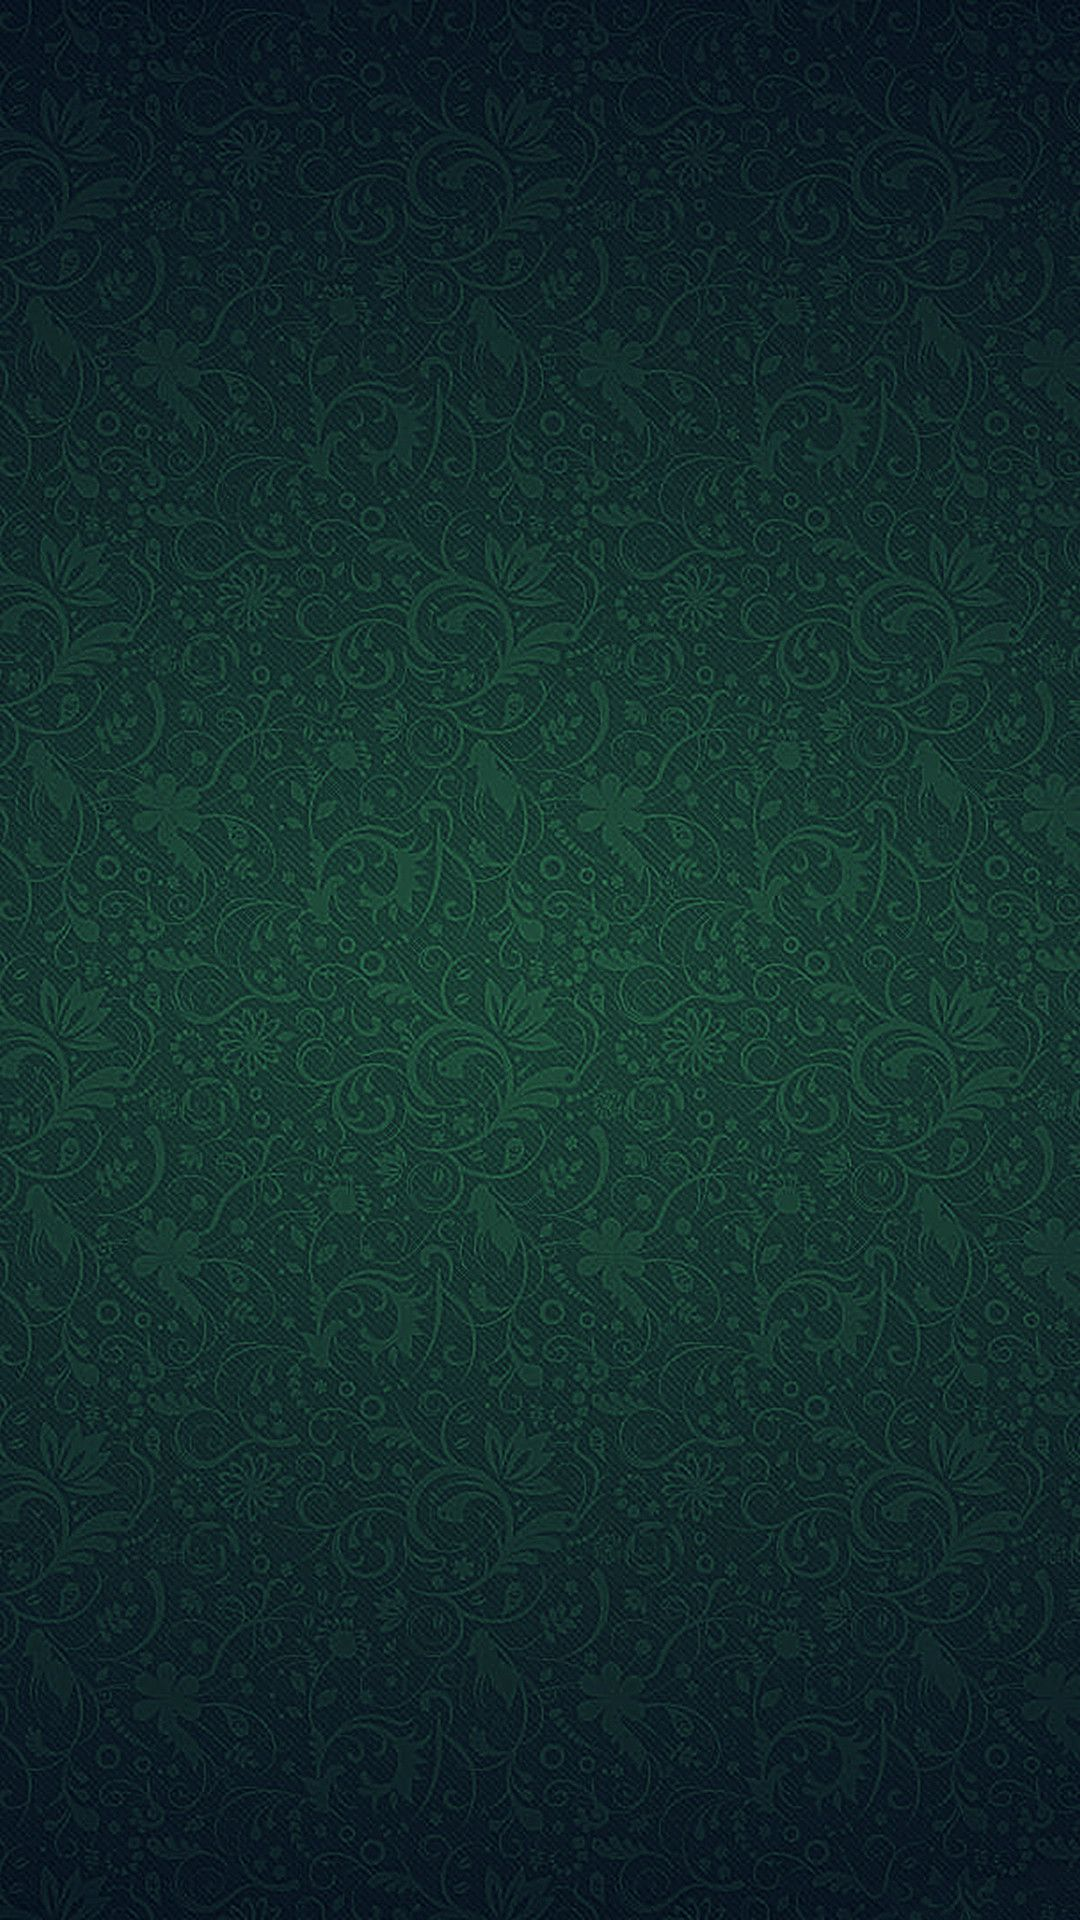 1080x1920 Green Ornament Texture Pattern Iphone 7